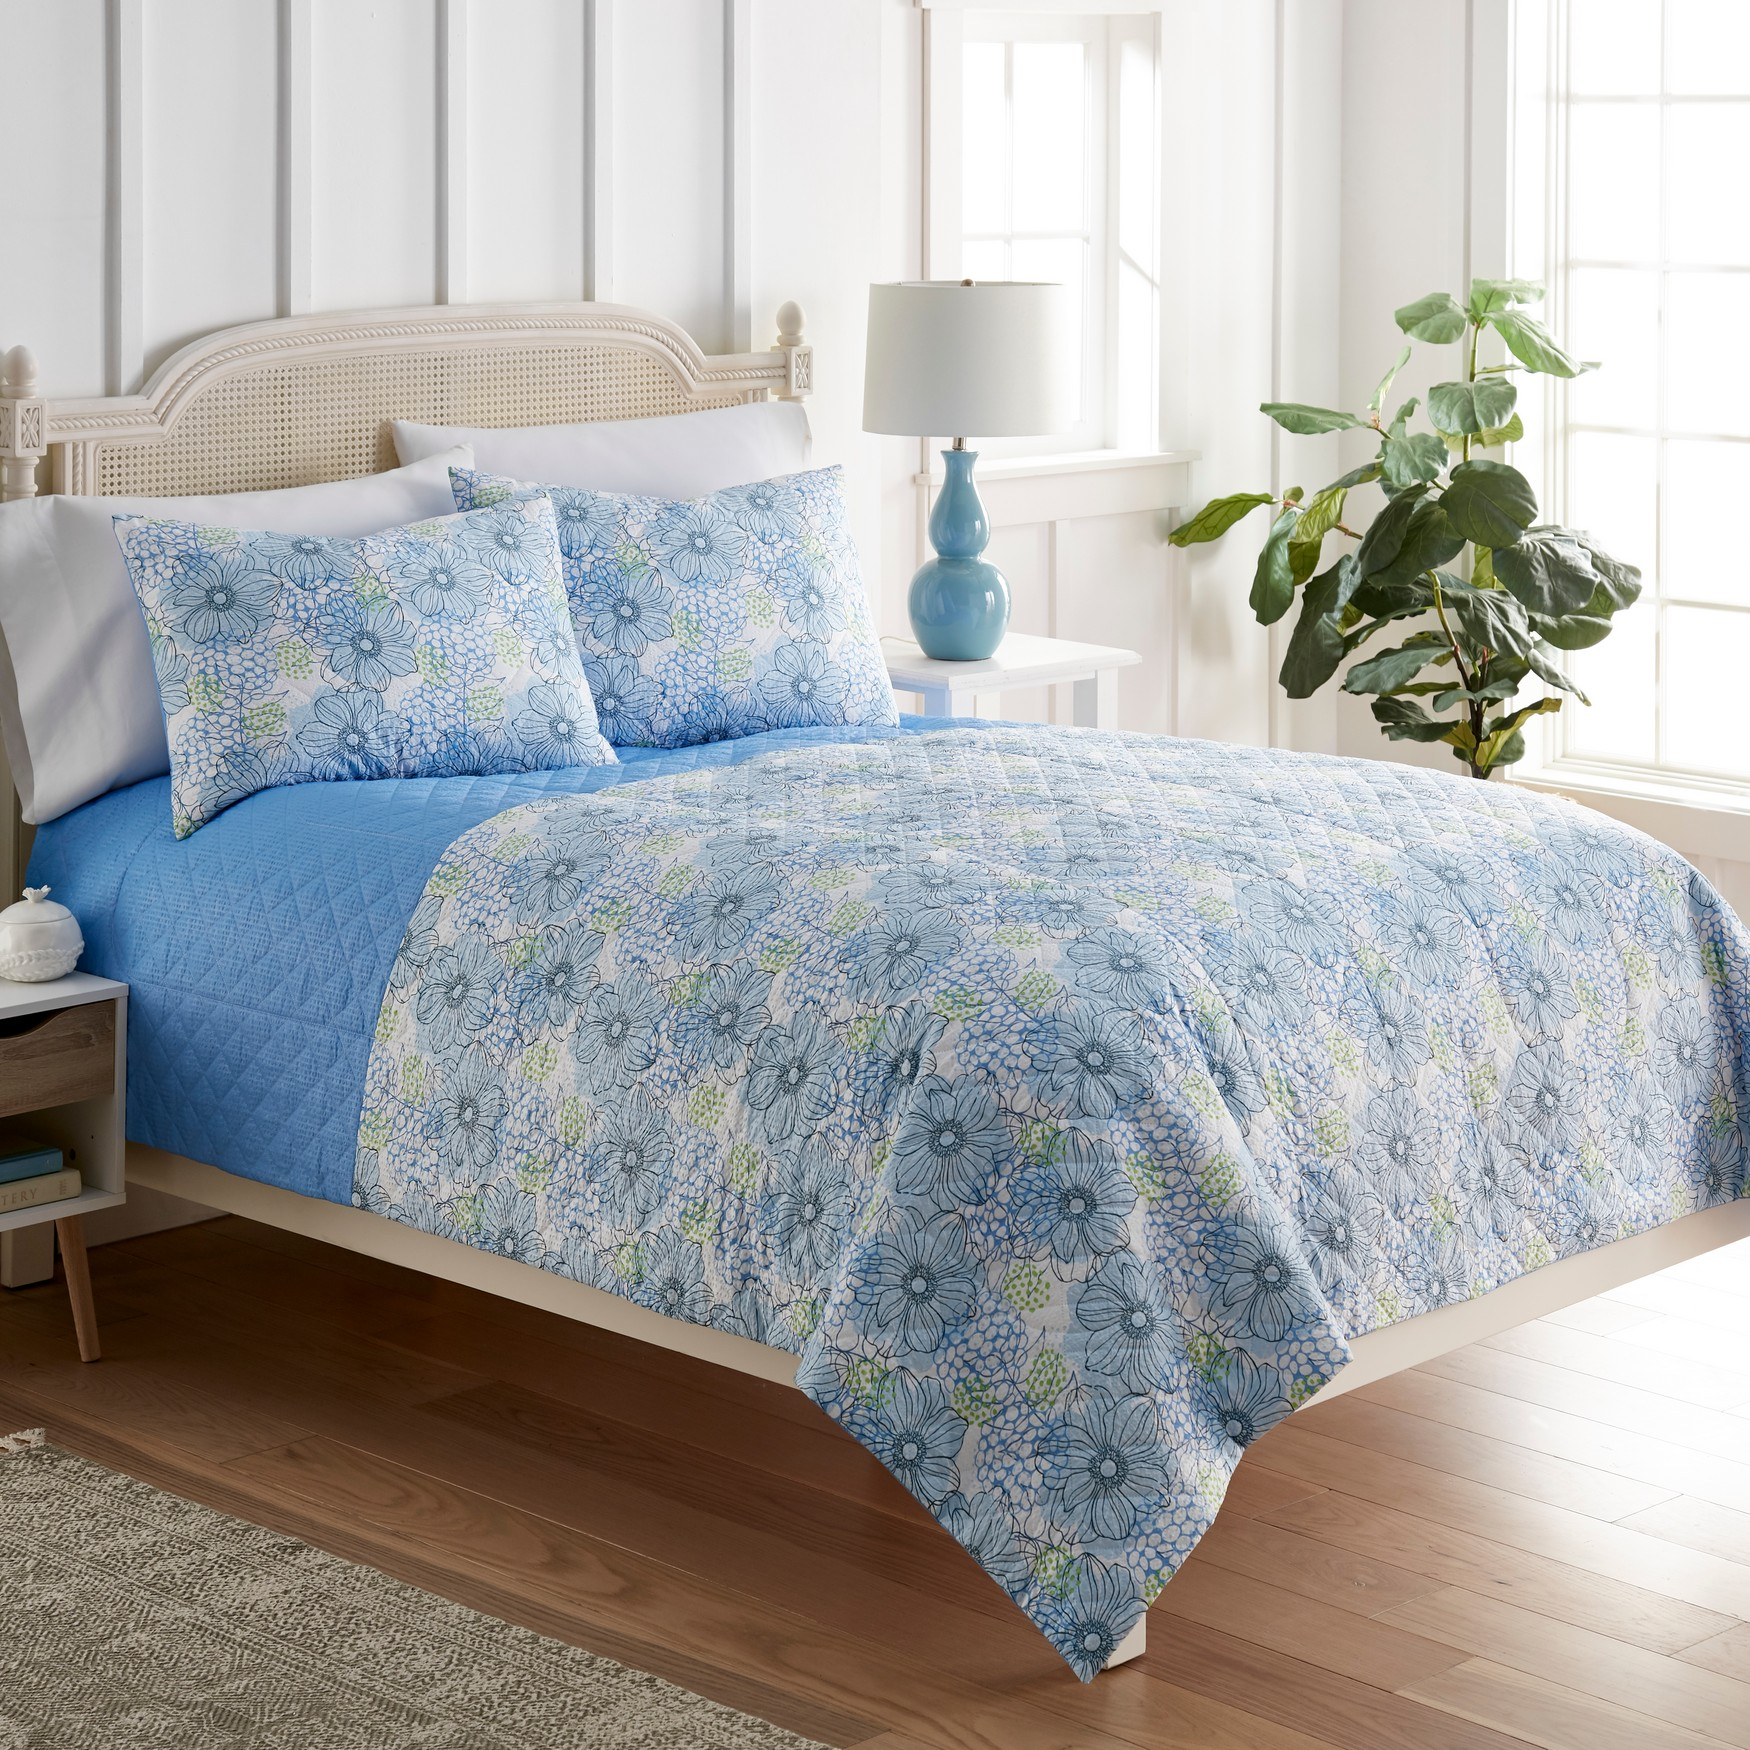 Seersucker 6-in-1 Quilt Set,